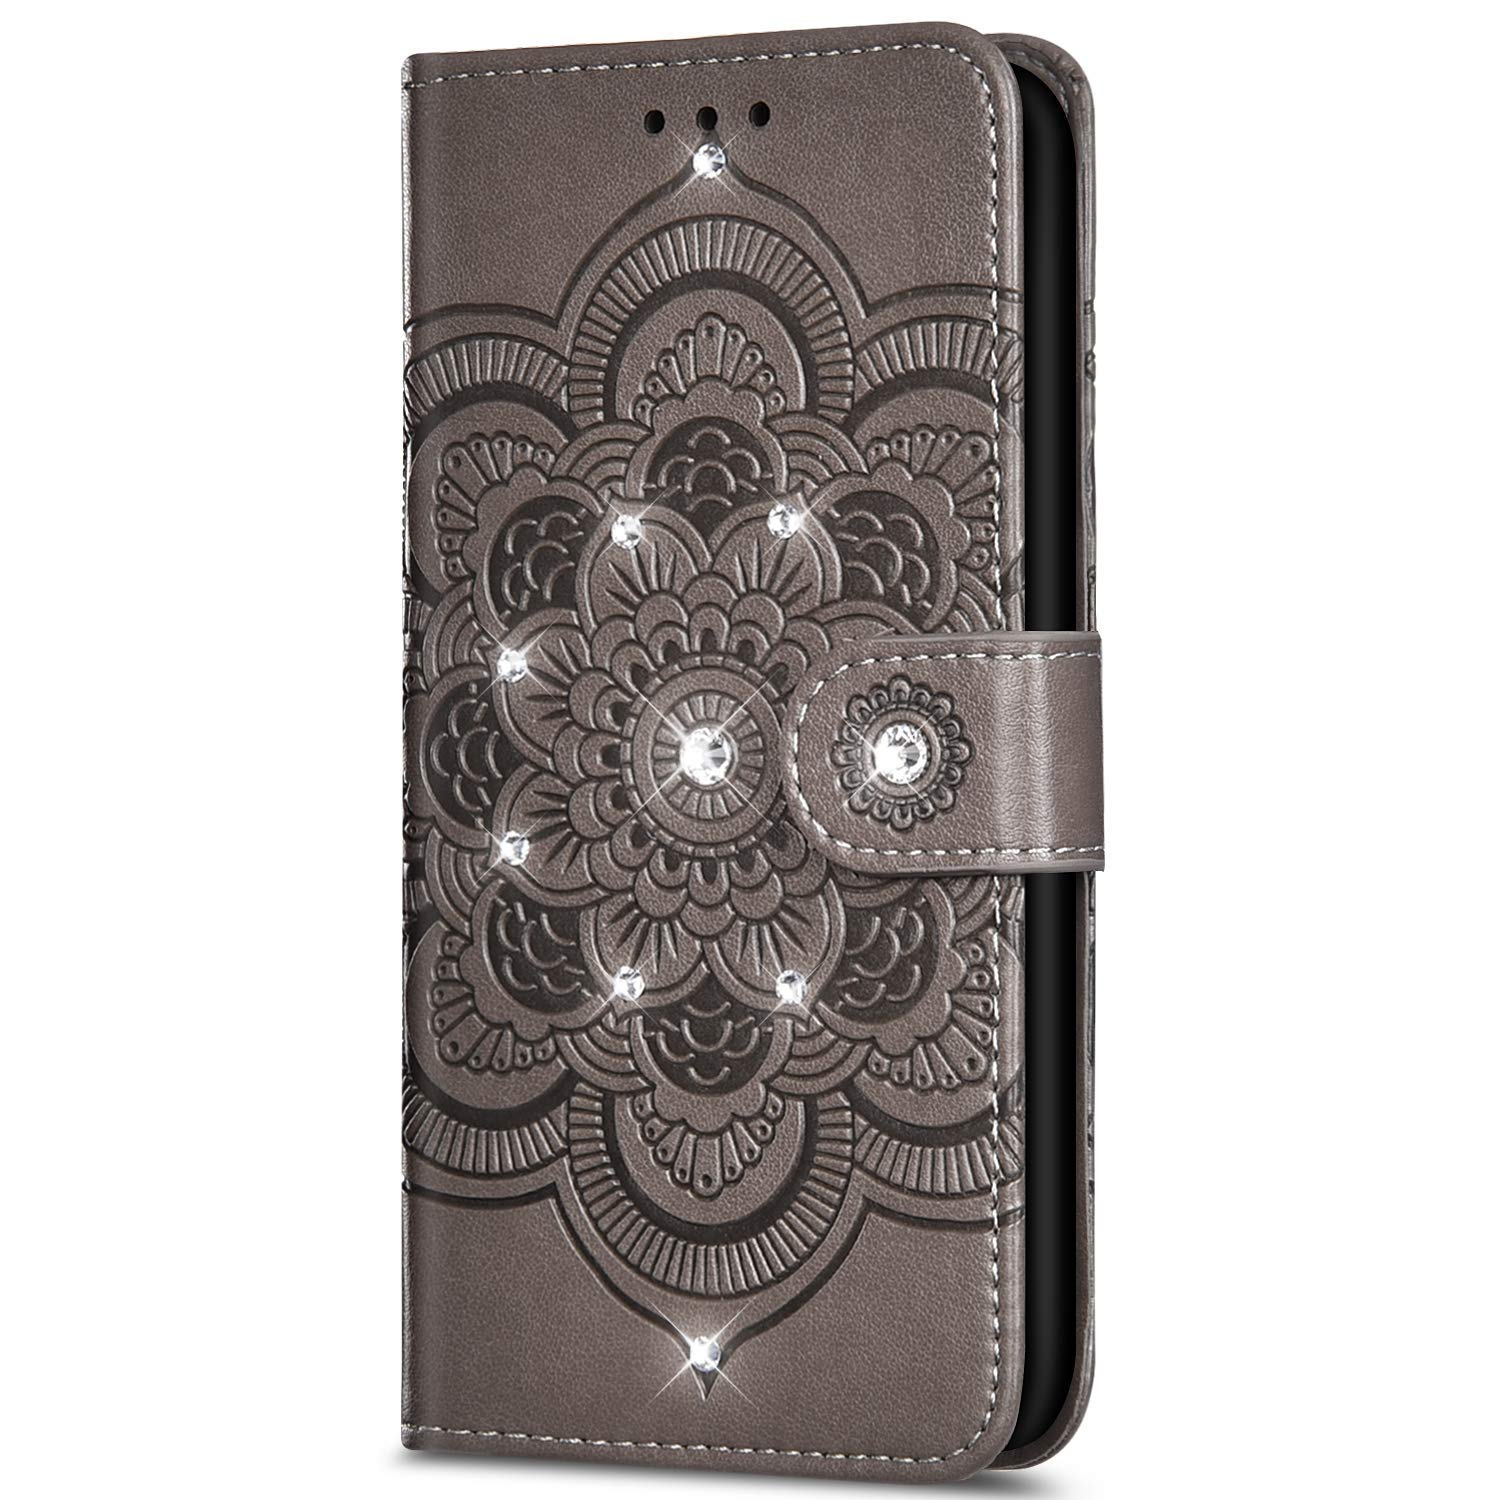 Case for Huawei Honor 8A Bling Glitter Rhinestone Sun mandala flower Embossed relief Flip PU Leather Wallet Case with Stand Function[Card Slots] [Magnetic closure]for Huawei Honor 8A,Gray by ikasus